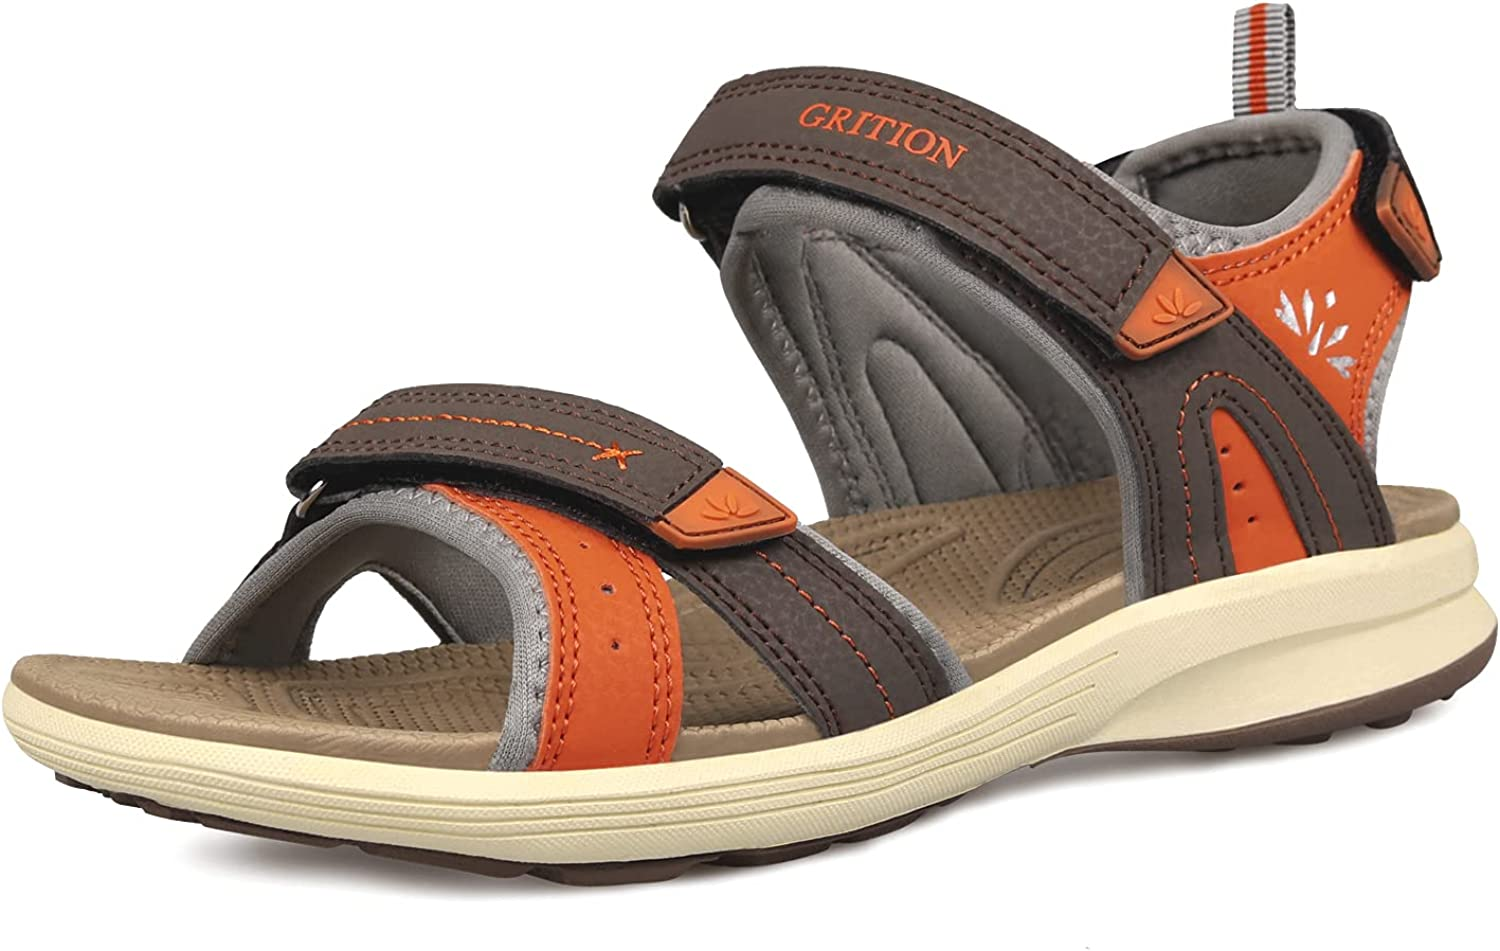 New color GRITION Womens Hiking Athletic Sandals Adjustabl Miami Mall Ladies Open Toe